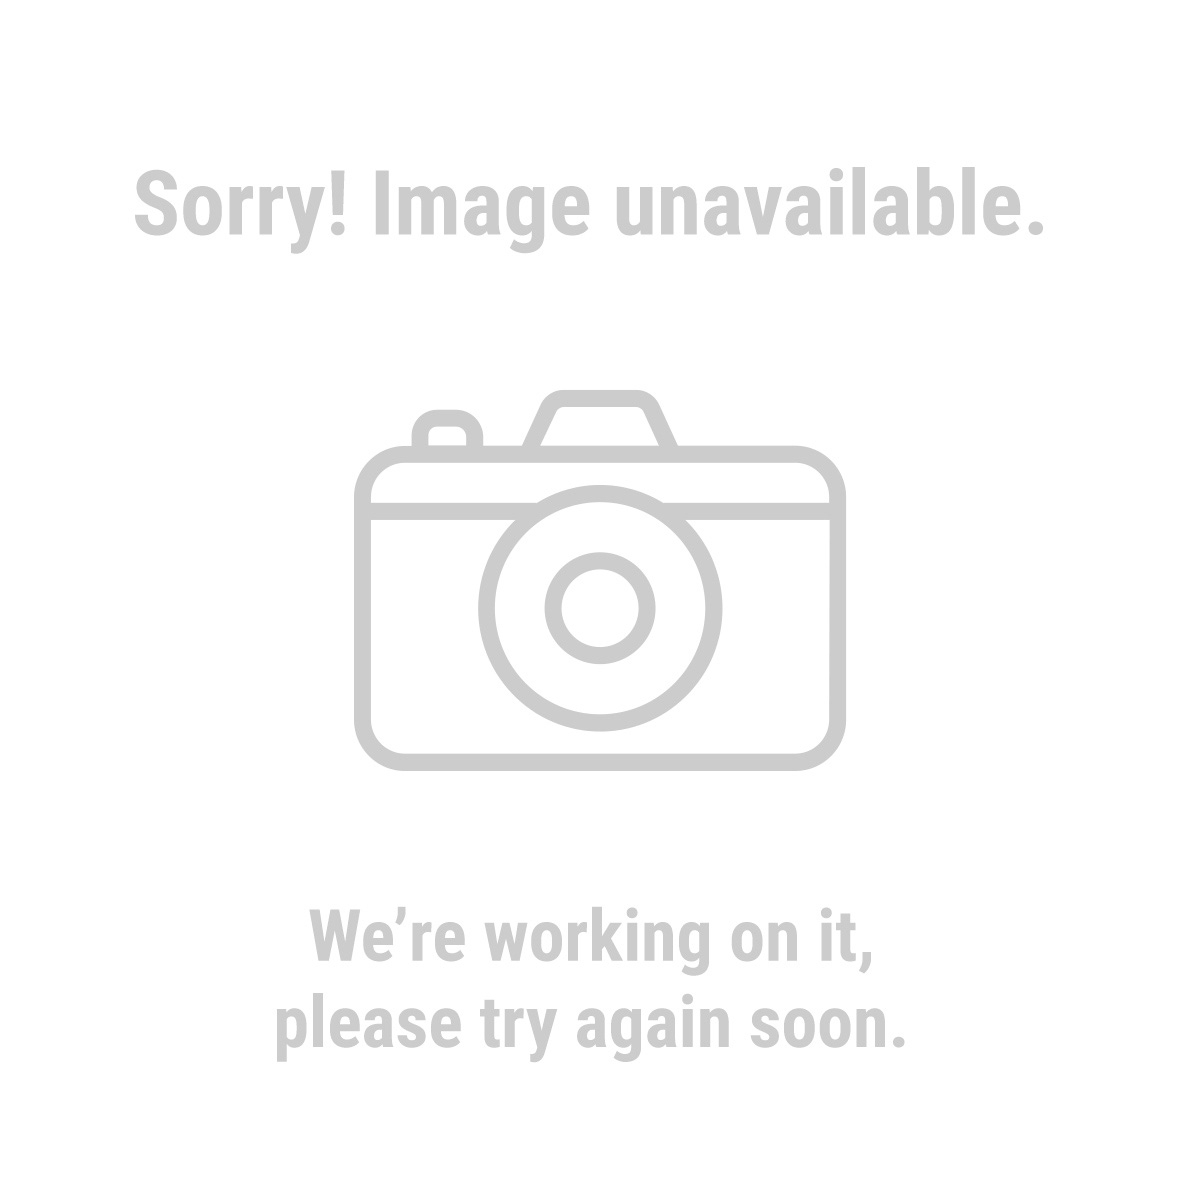 Central Hydraulics 37555 1/2 Ton Capacity Pickup Truck Crane with Cable Winch